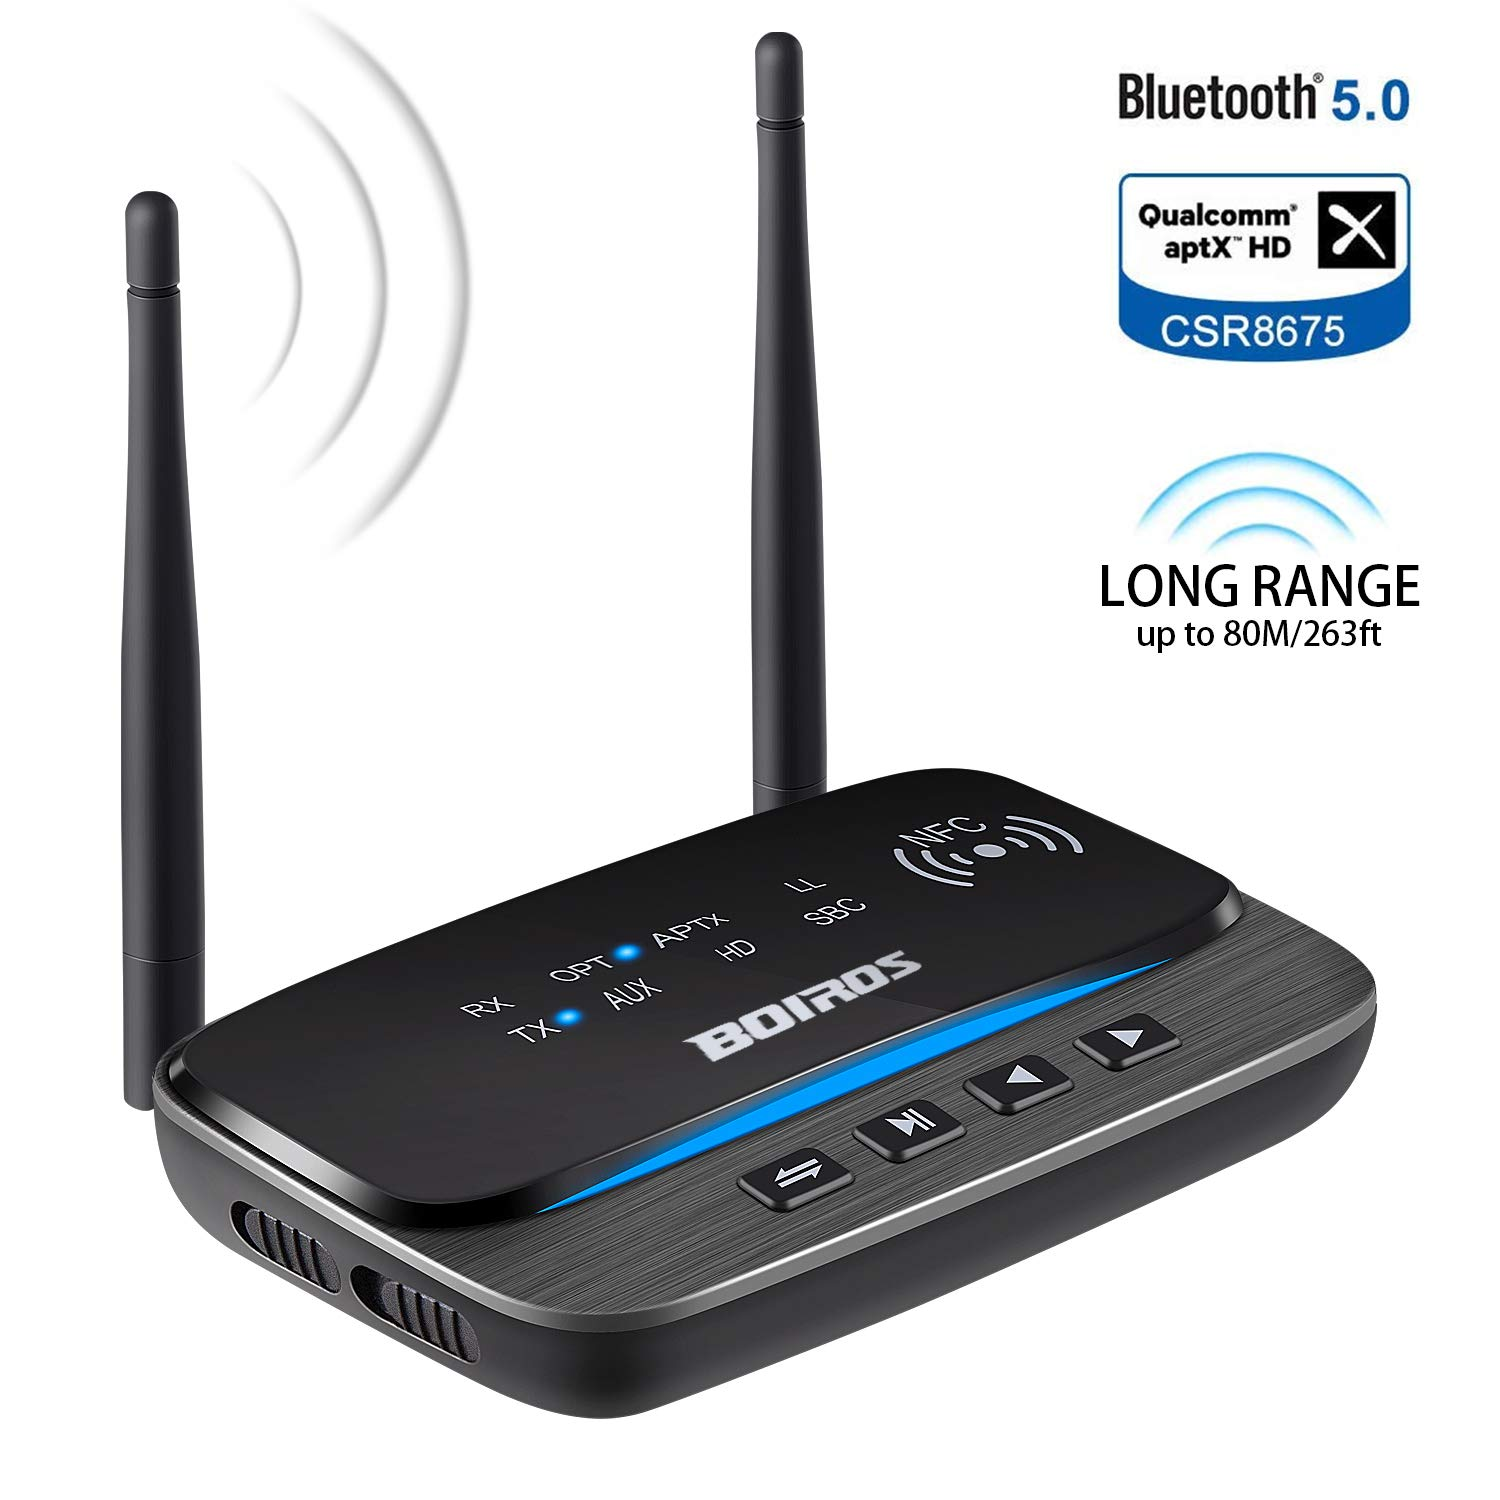 Bluetooth 5.0 Transmitter Receiver, Long Range 263ft Wireless aptX HD Low Latency Upgraded 3 in 1 Bluetooth Audio Adapter Pair 2 Devices Hi-Fi Sound, Optical AUX RCA 3.5mm for TV Home Stereo System